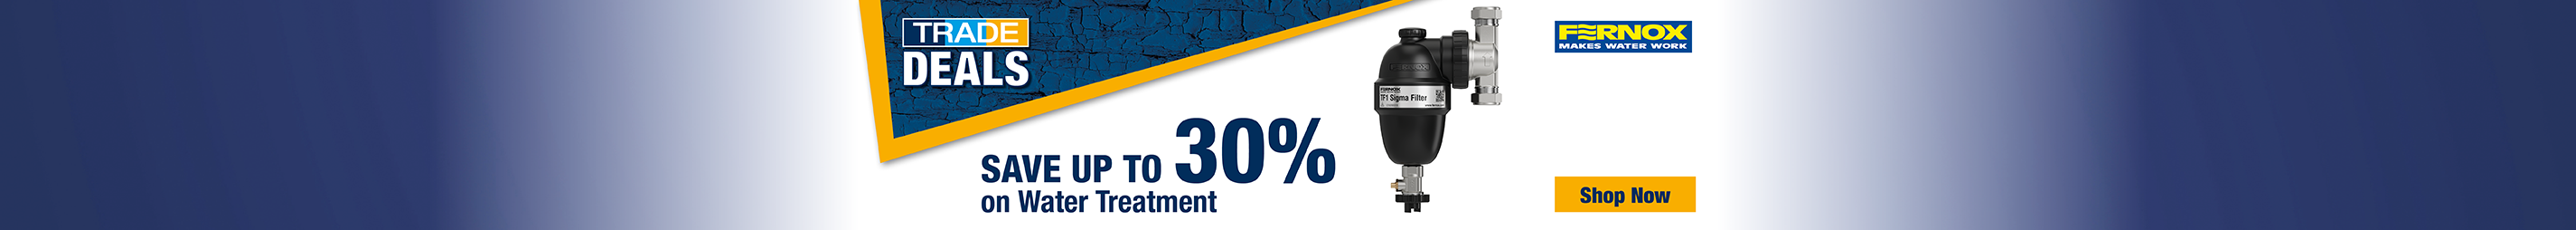 Save up to 30% Water Treatment